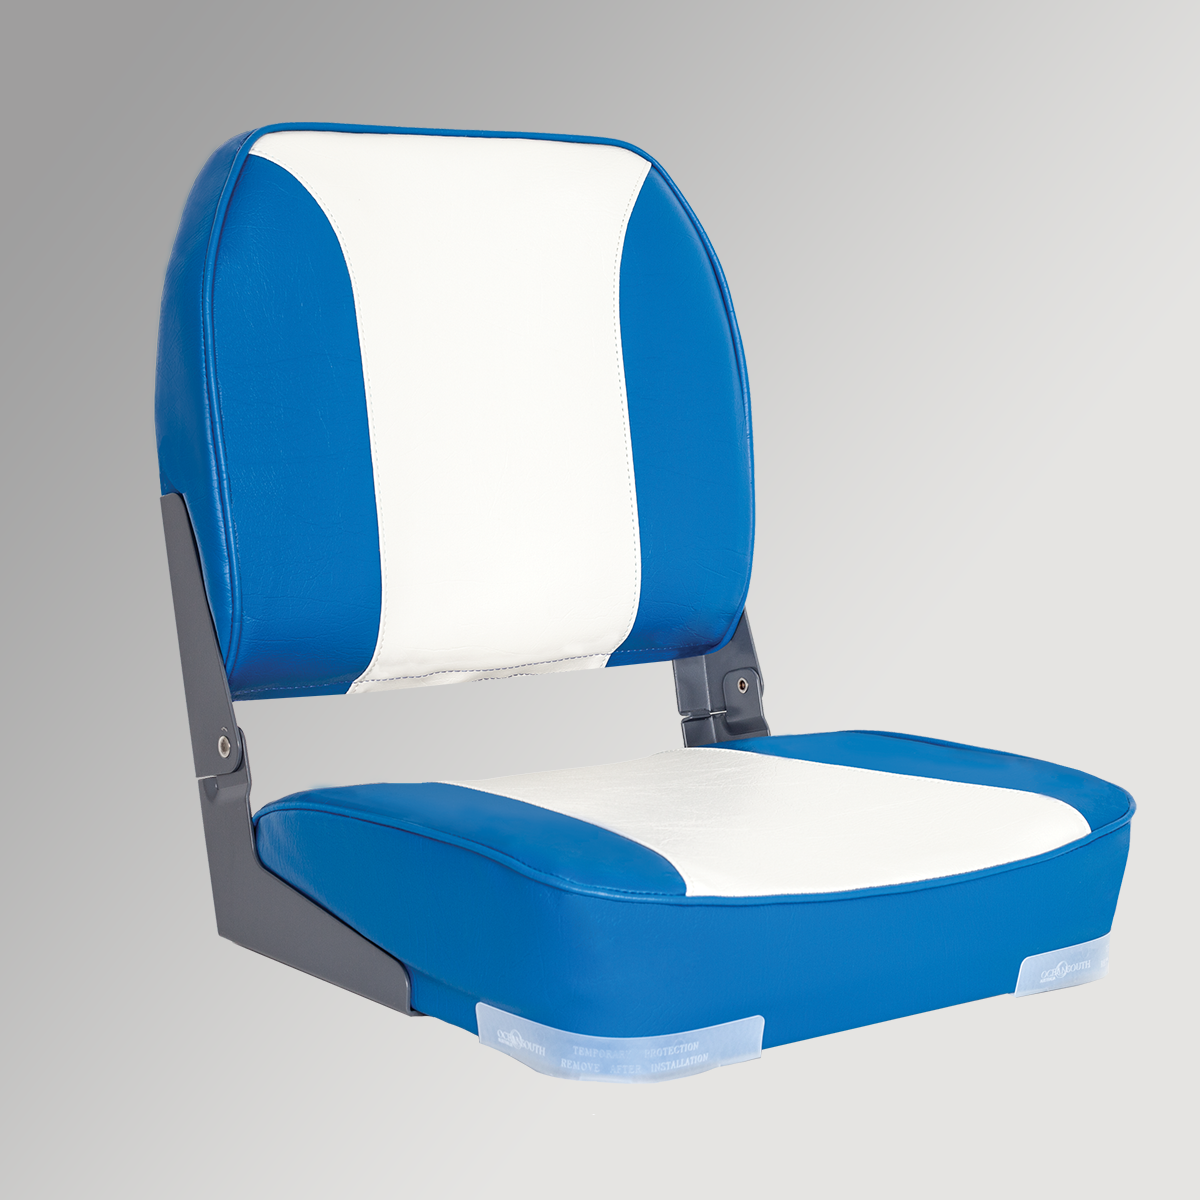 Deluxe Folding Boat Seat Blue/White